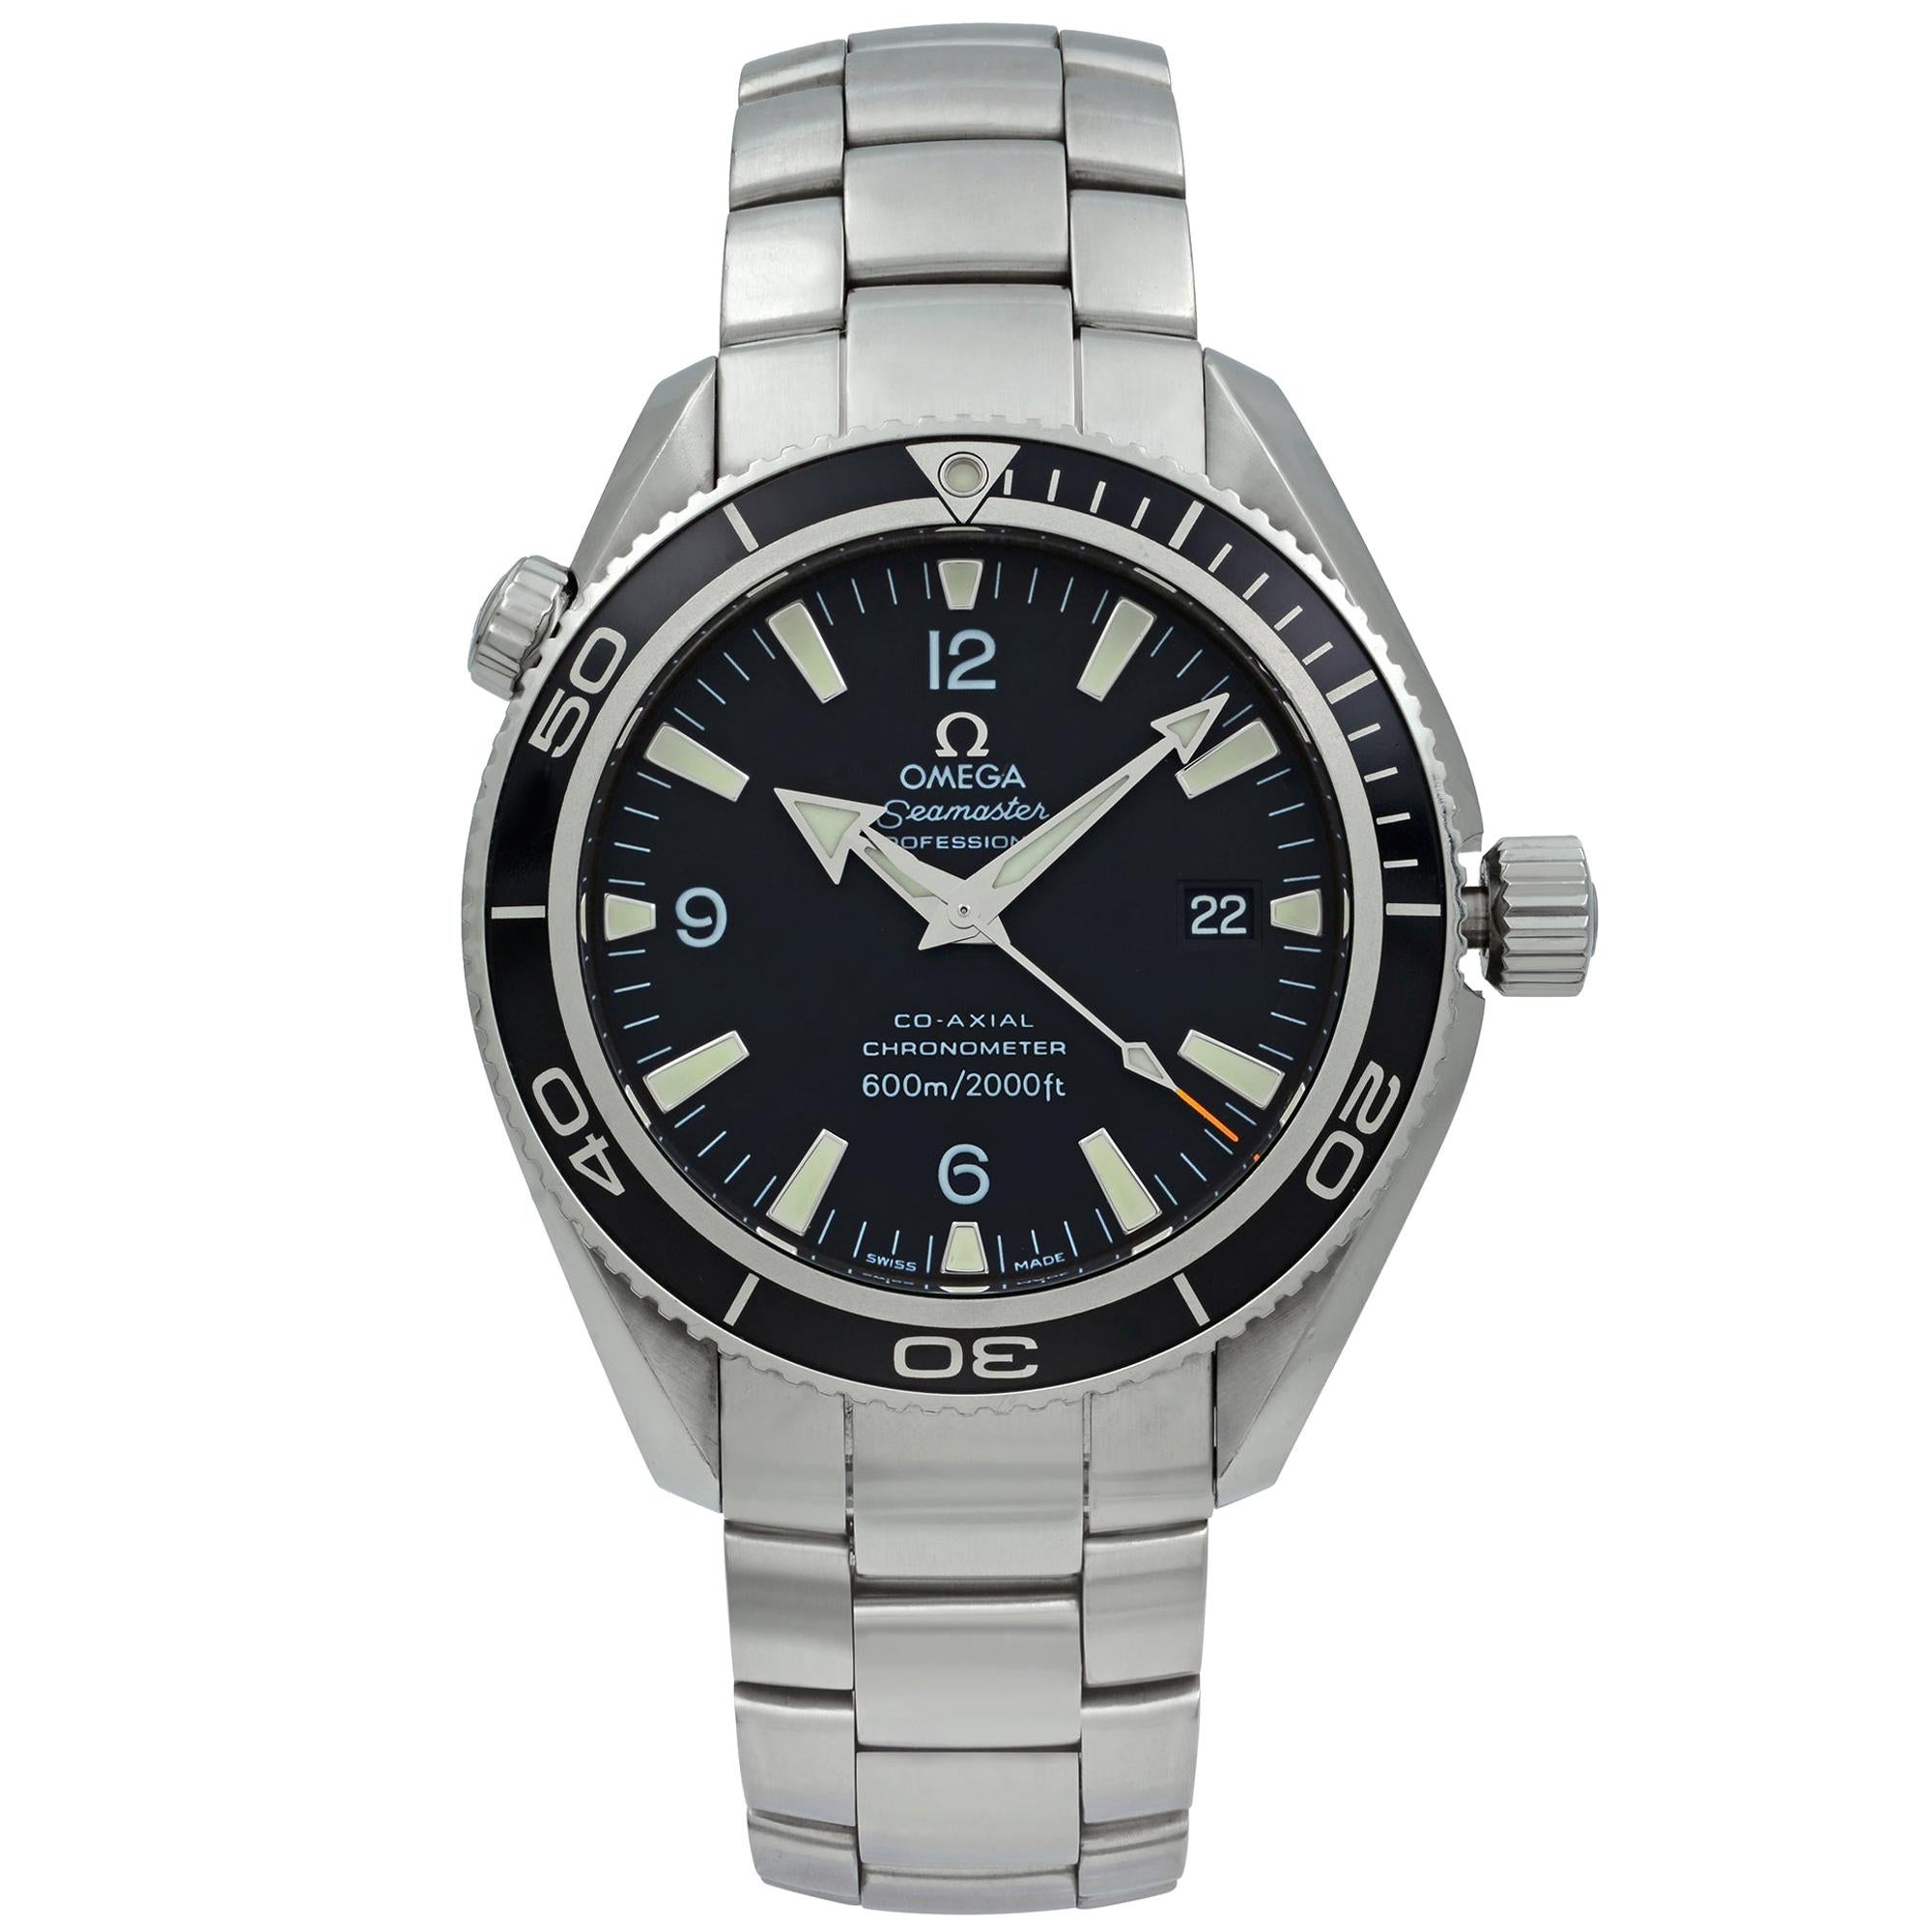 Omega Seamaster Planet Ocean Steel Black Dial Automatic Men's Watch 2201.50.00